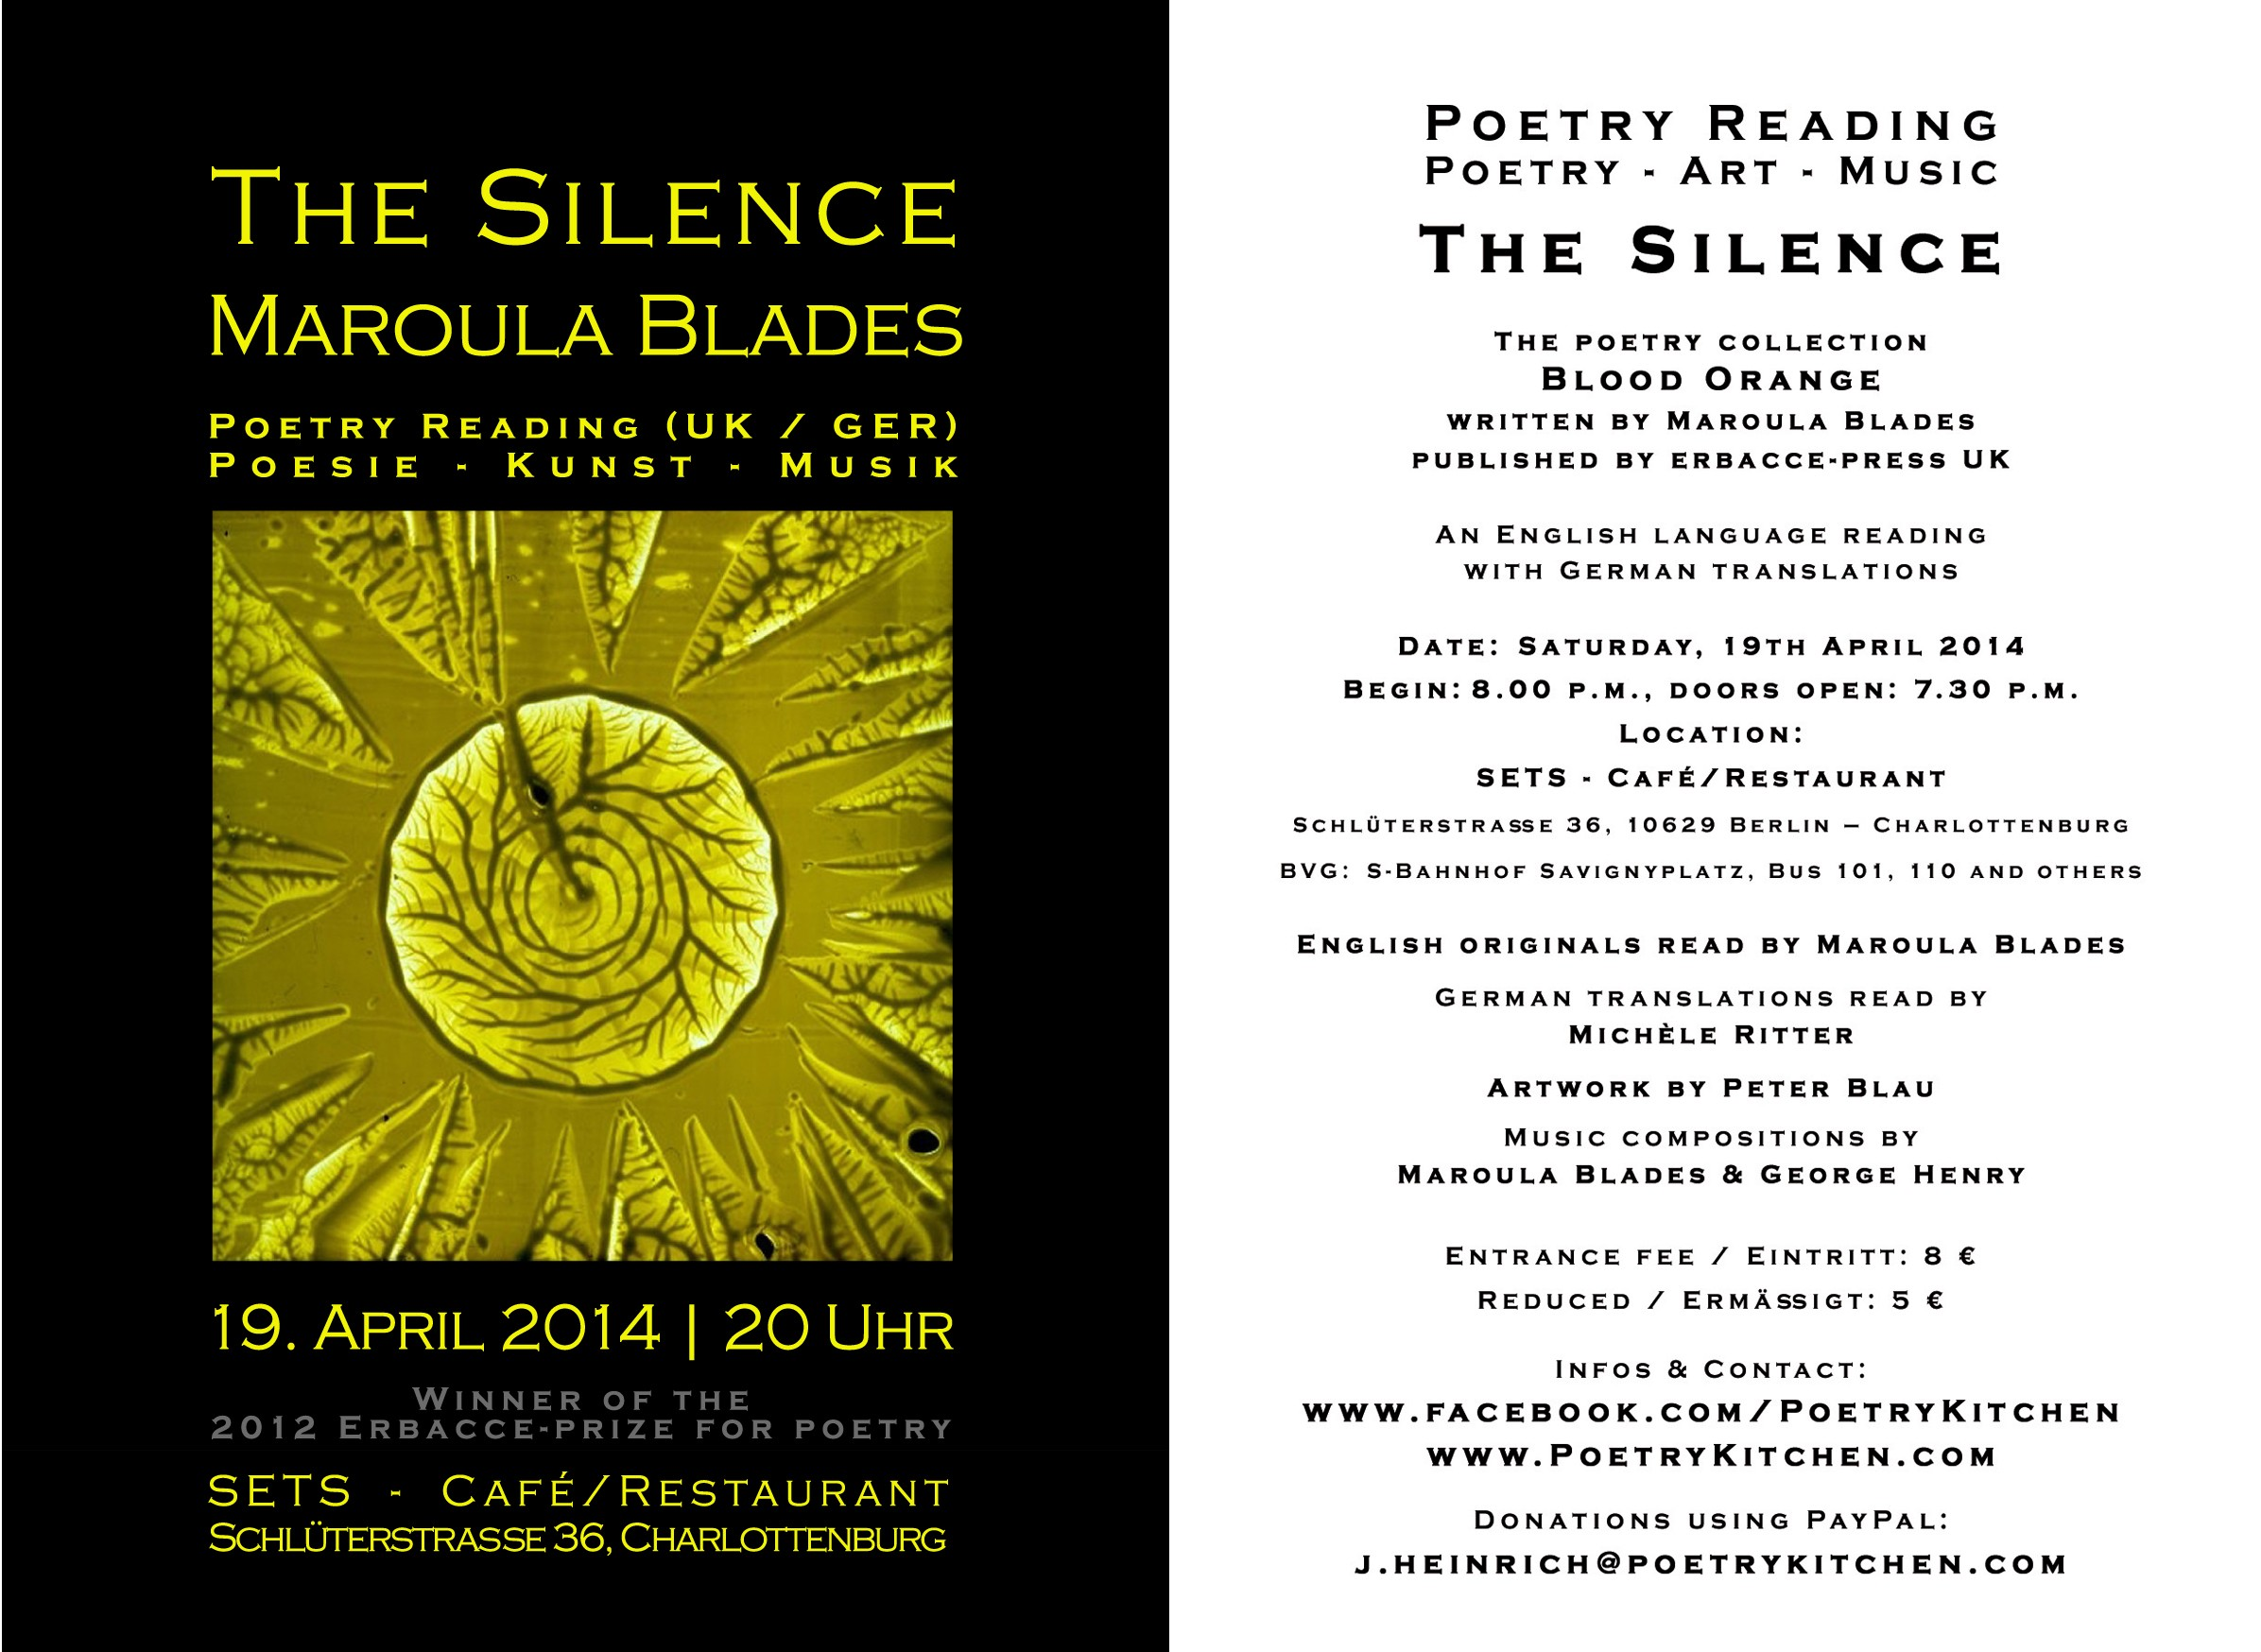 email flyer - Maroula Blades - The Silence